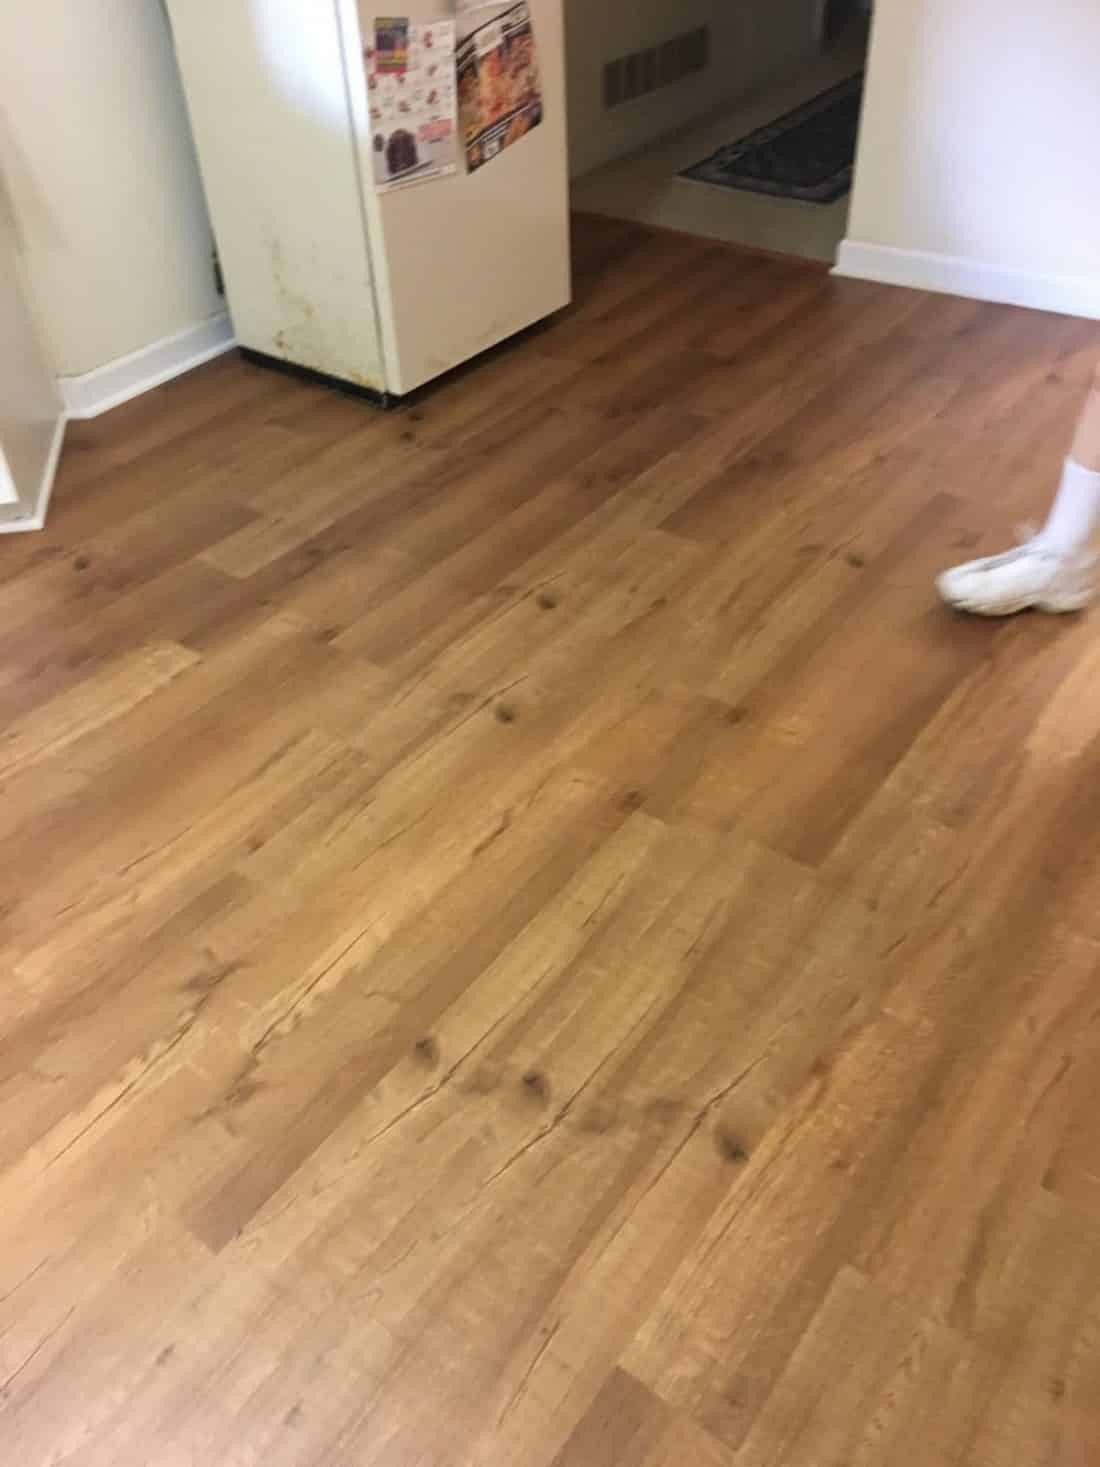 Luxury Vinyl Plank Lvp Installed In The Foyer This Color Is Called American Ginger